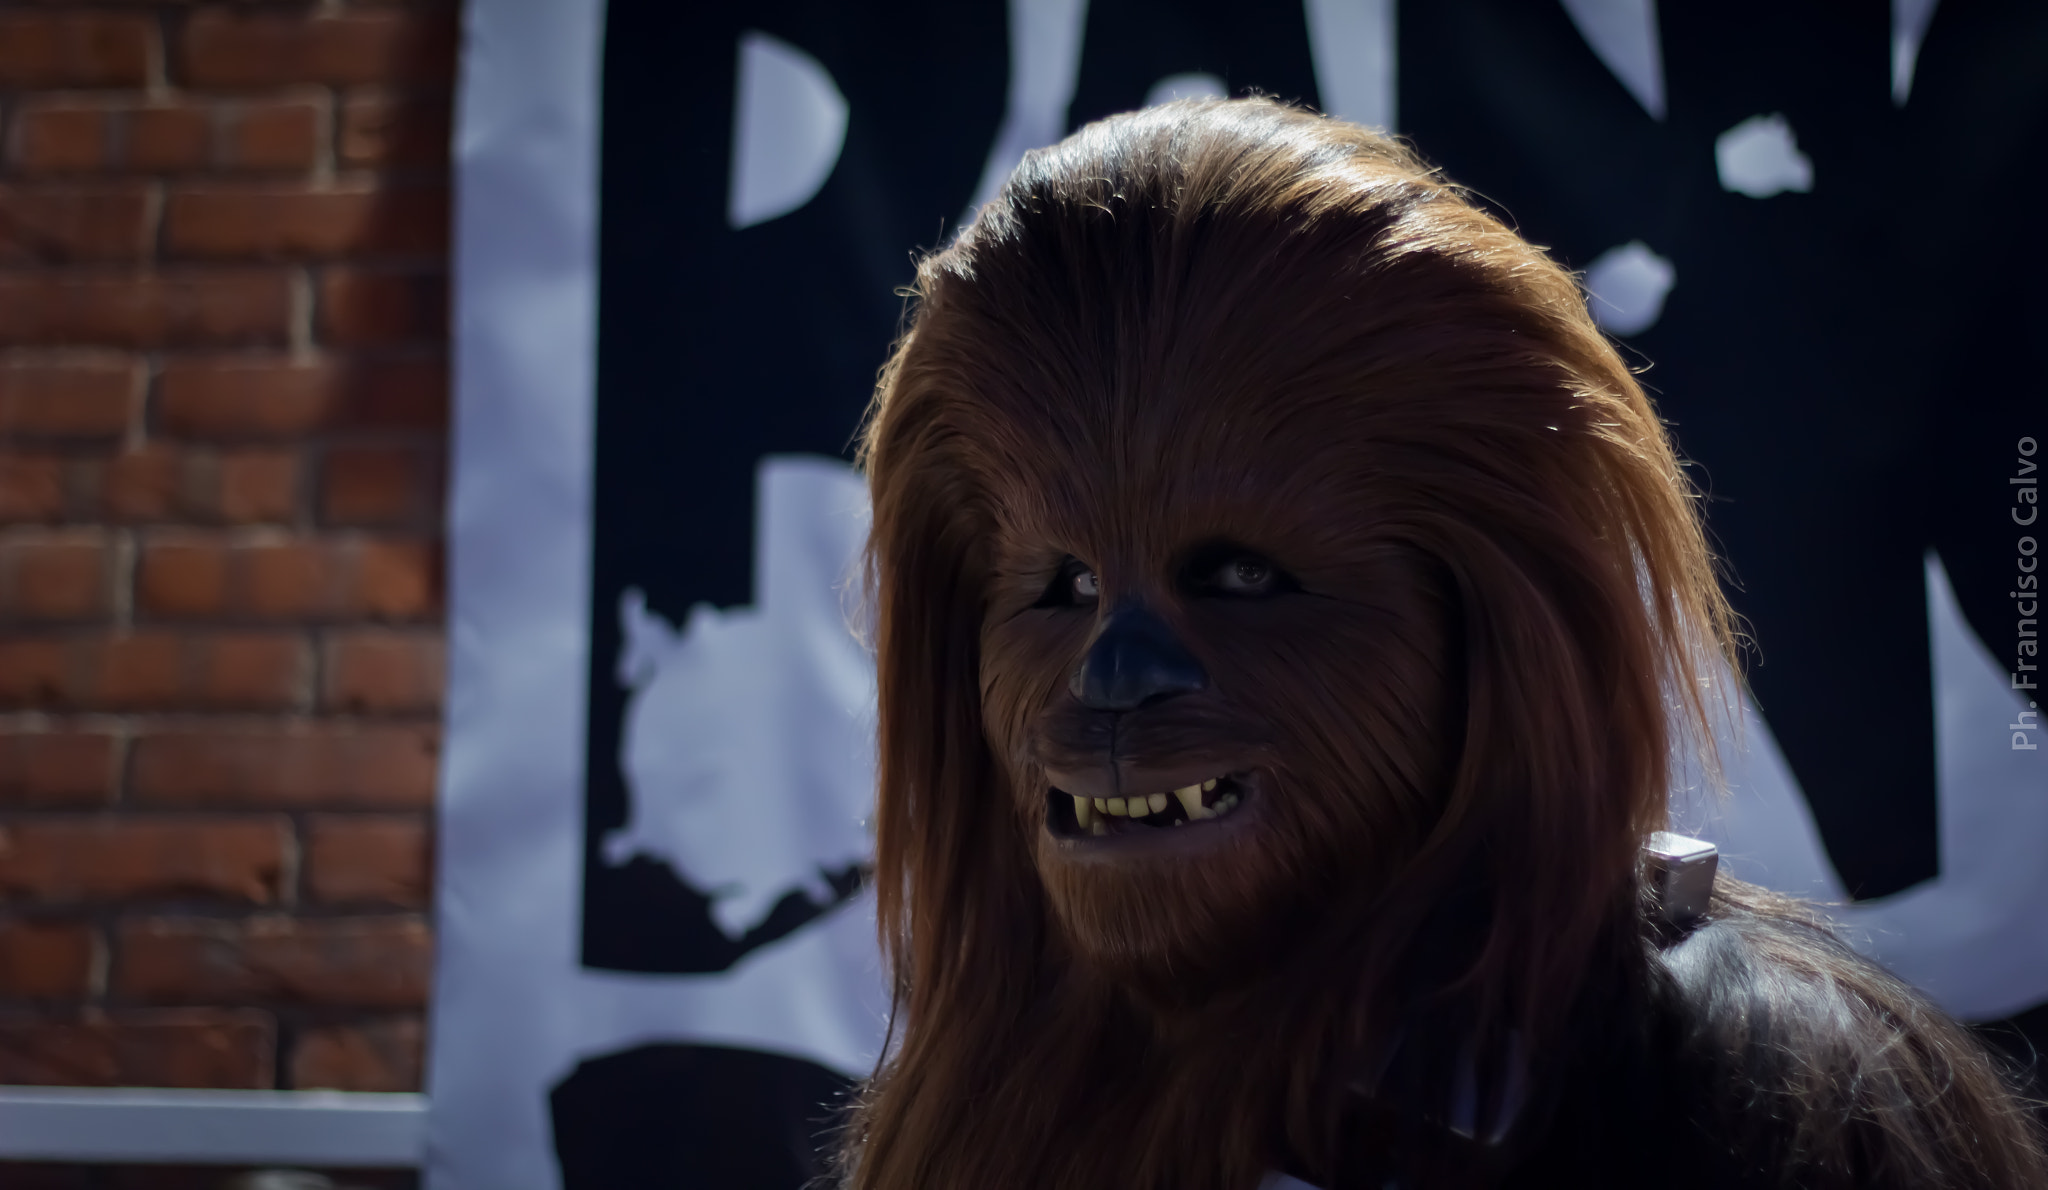 Photograph Chewbacca by Francisco Calvo on 500px